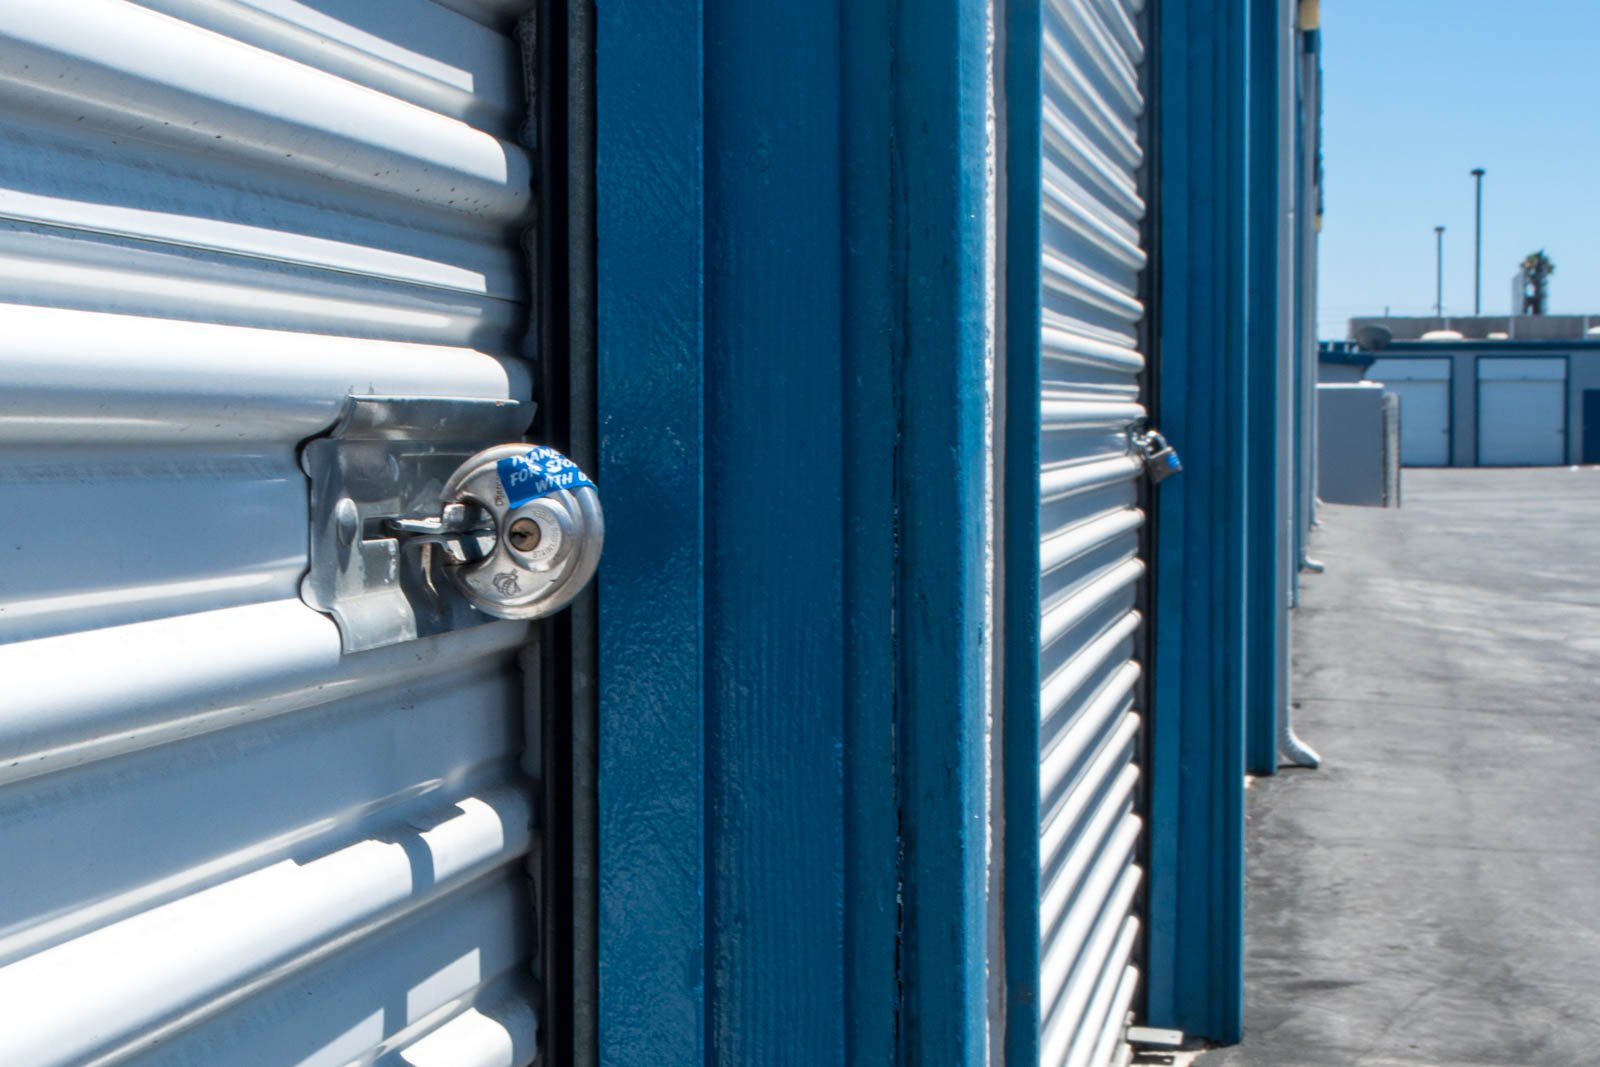 Storage units in Costa Mesa, CA – image 1